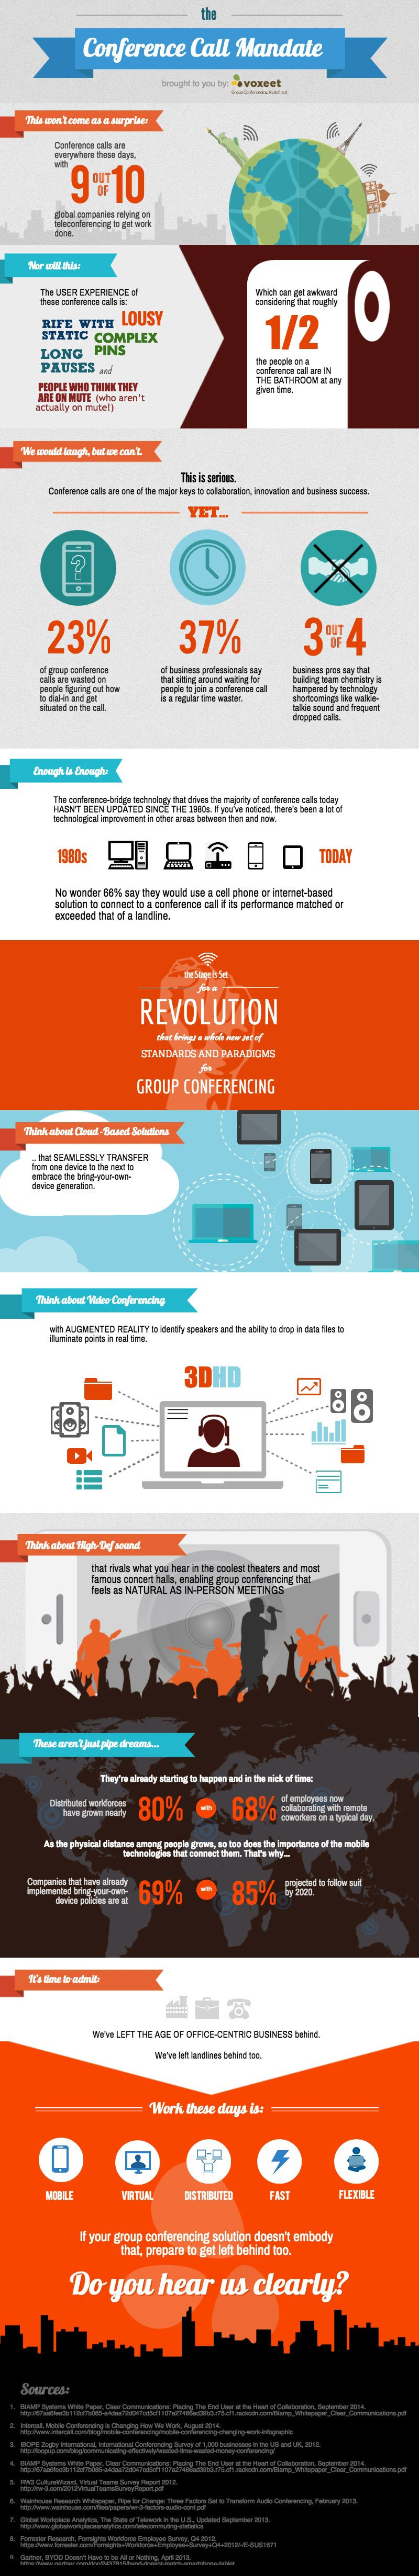 Mobile Conferencing Predictions for 2015 and Beyond: How BYOD Will Fuel Innovation (infographic)